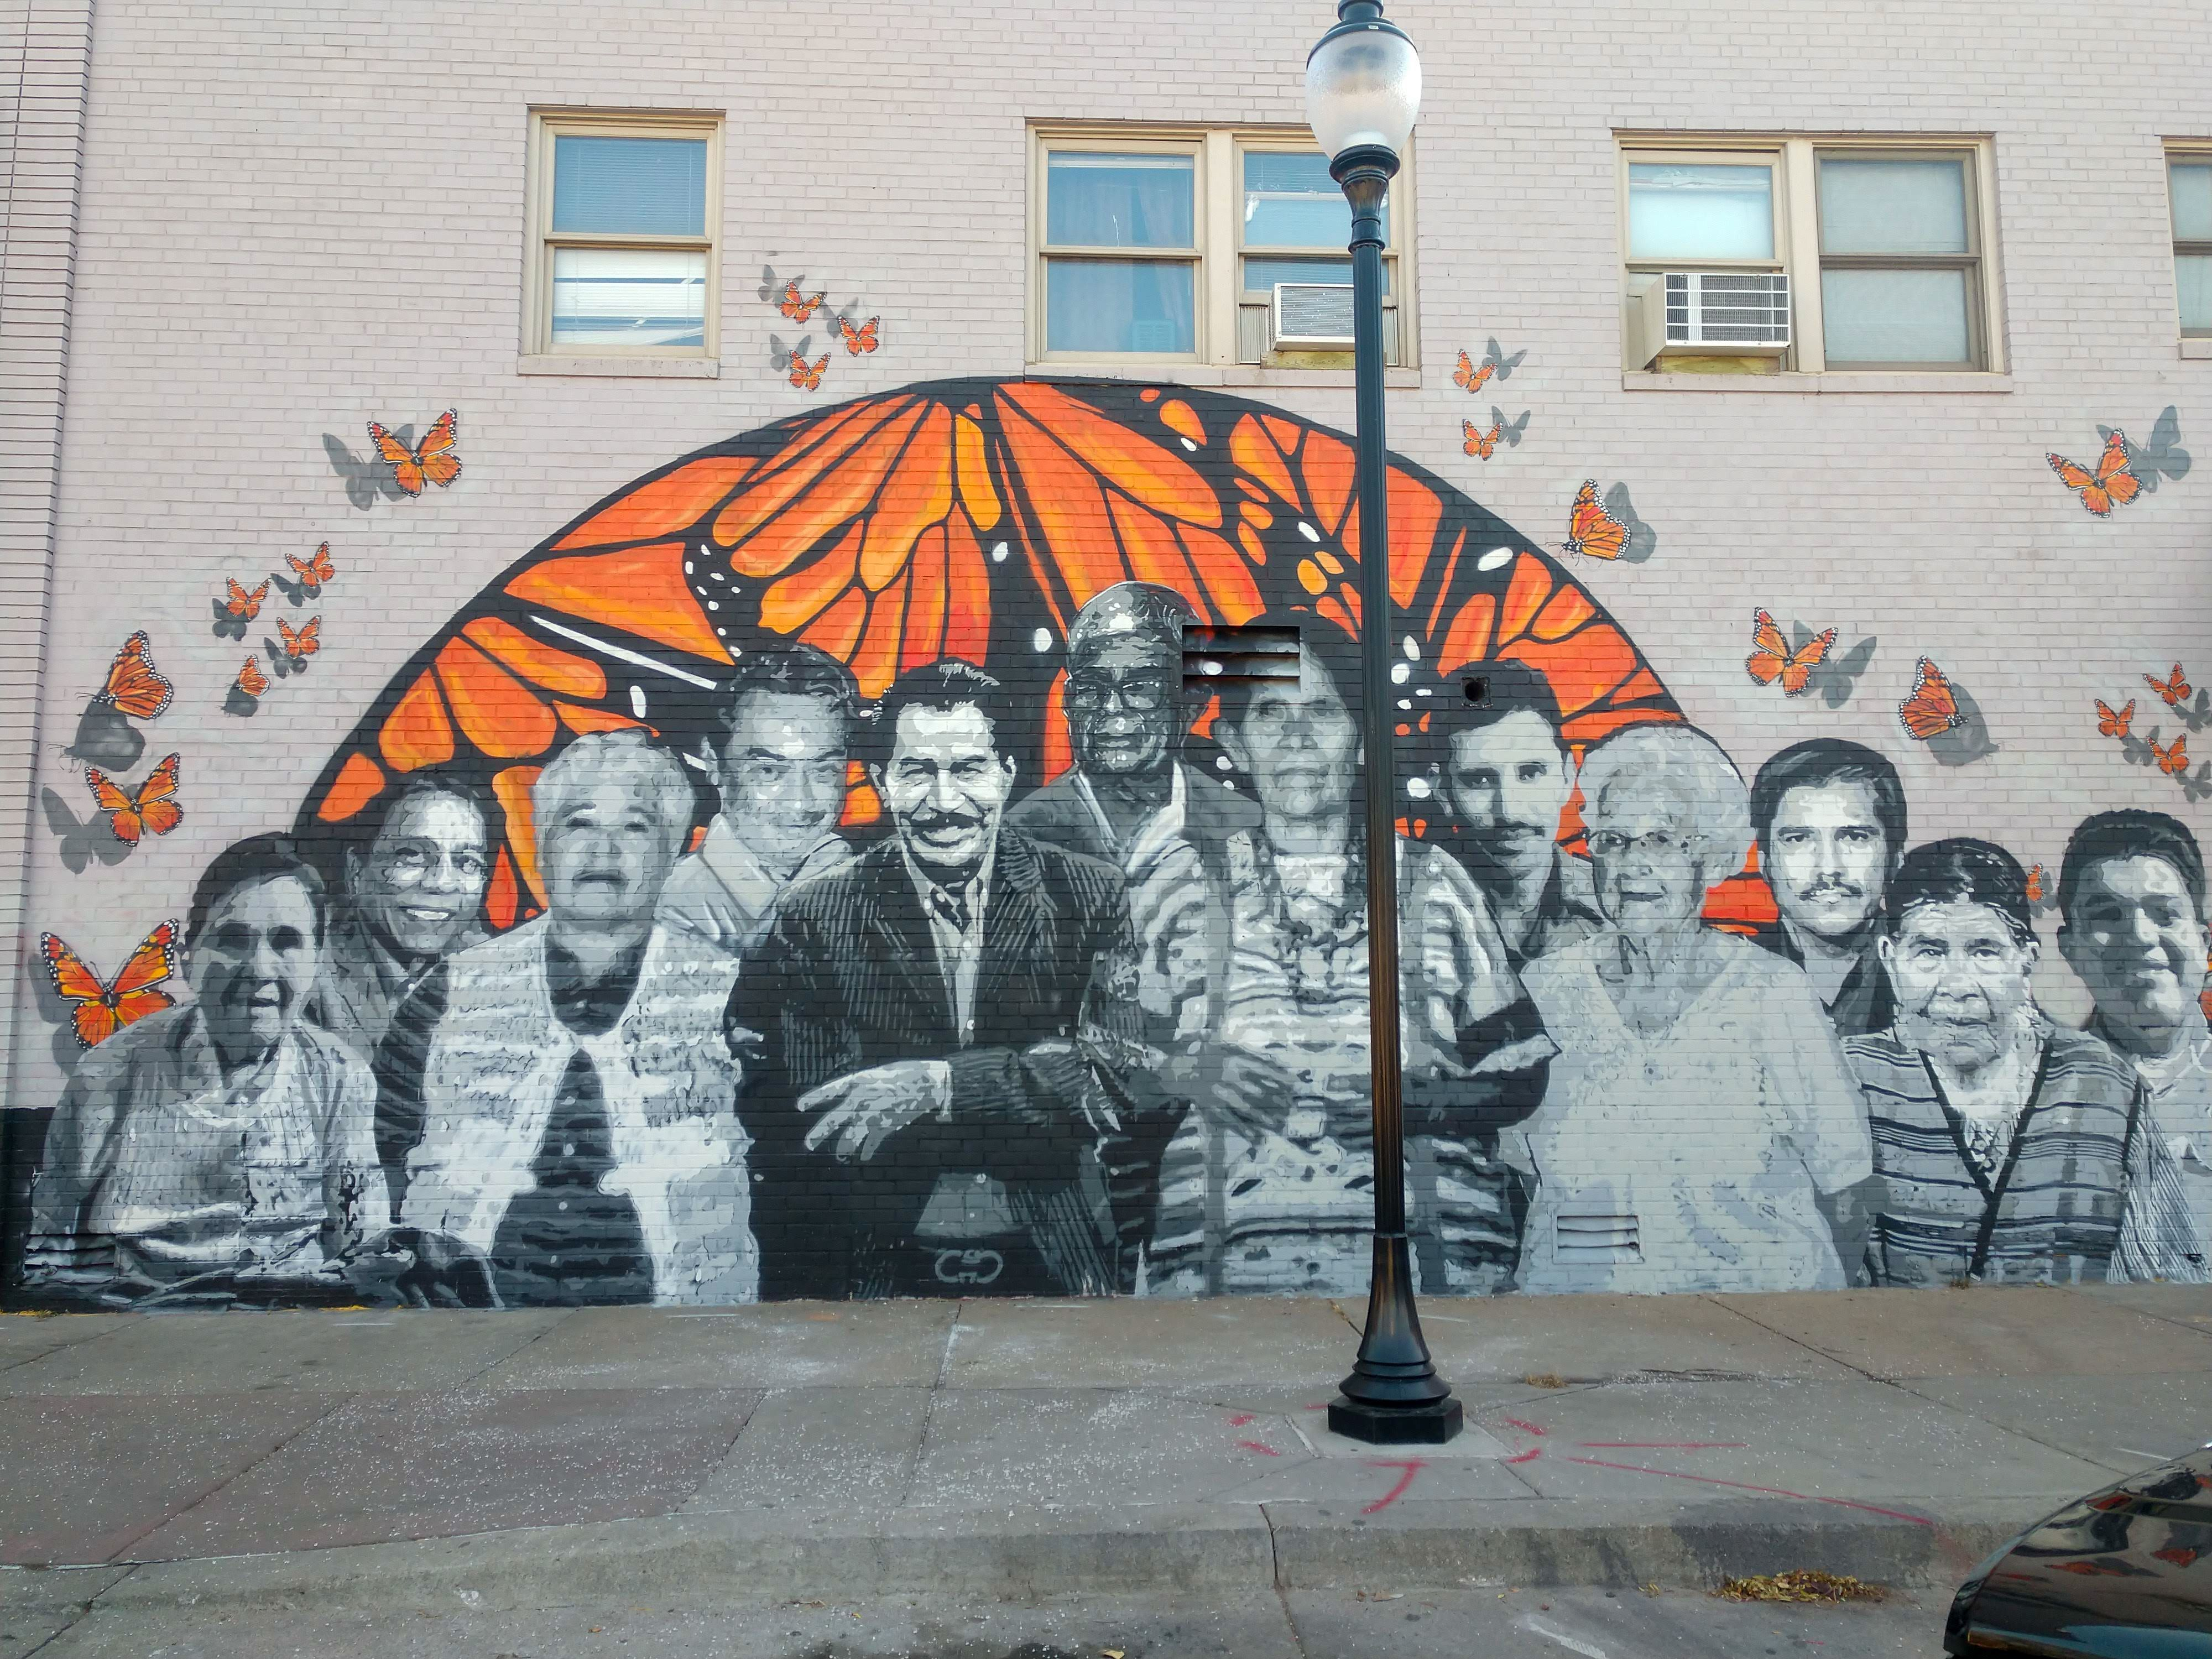 The Community Turns Out to Support a Mural About our Ancestors